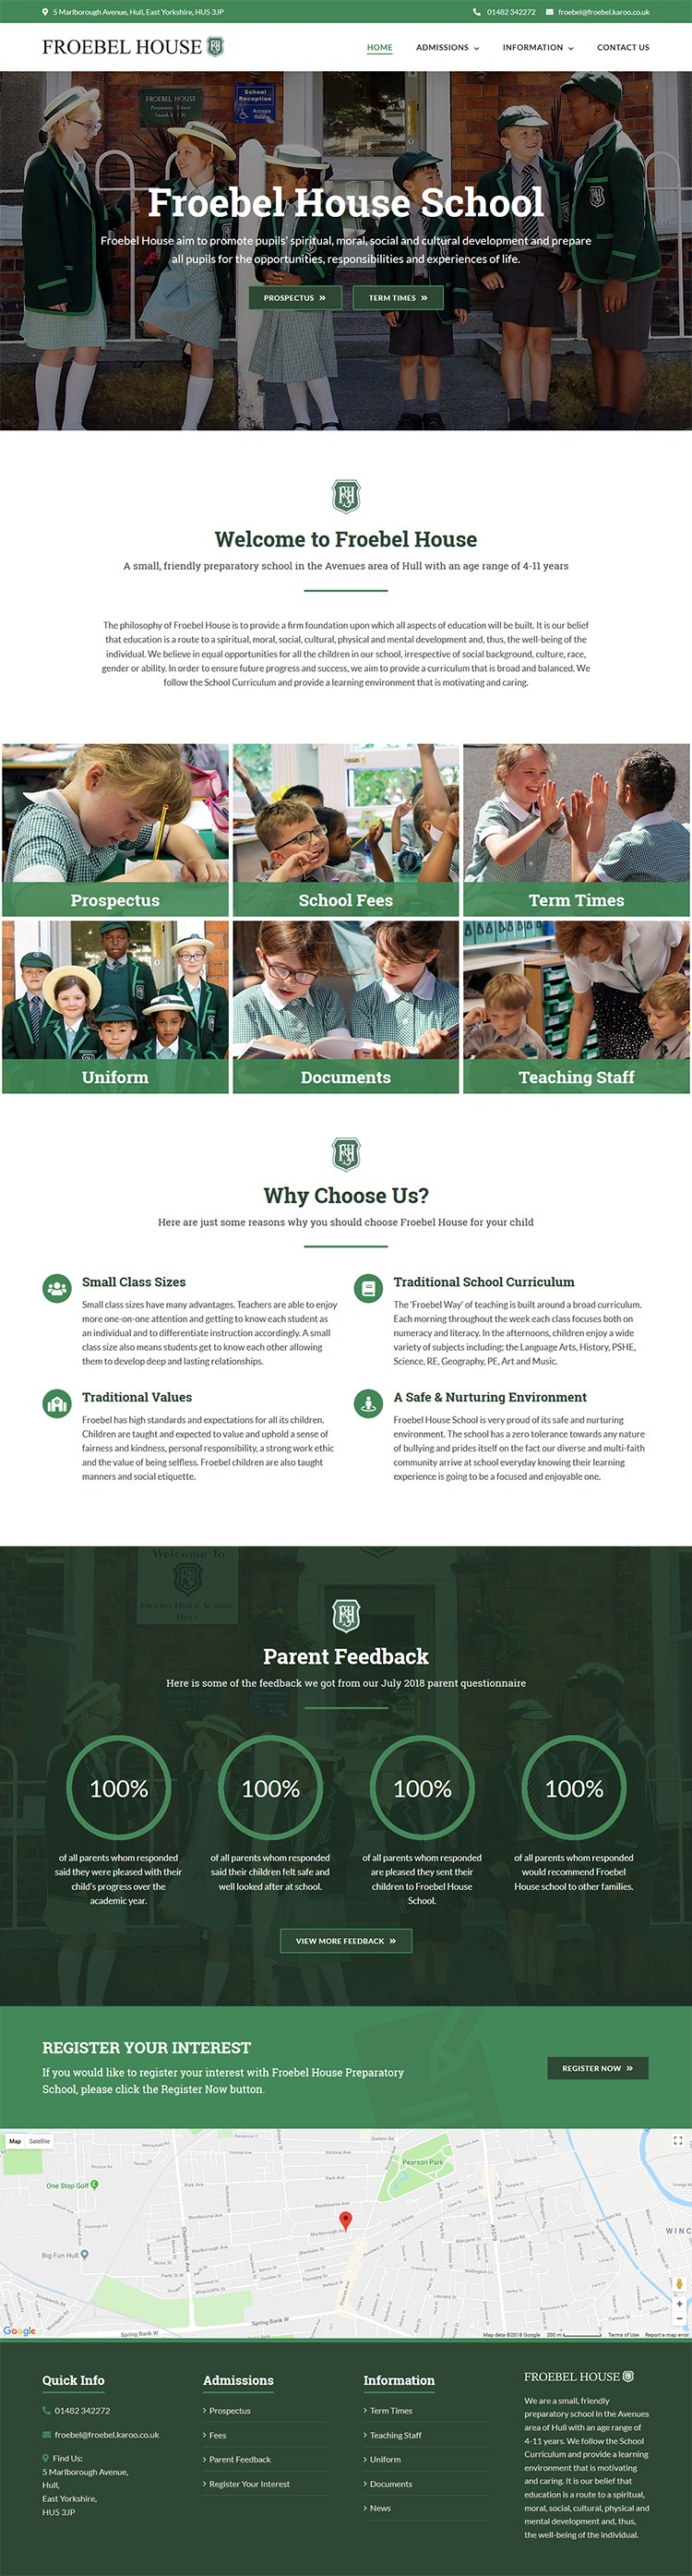 Froebel House website layout